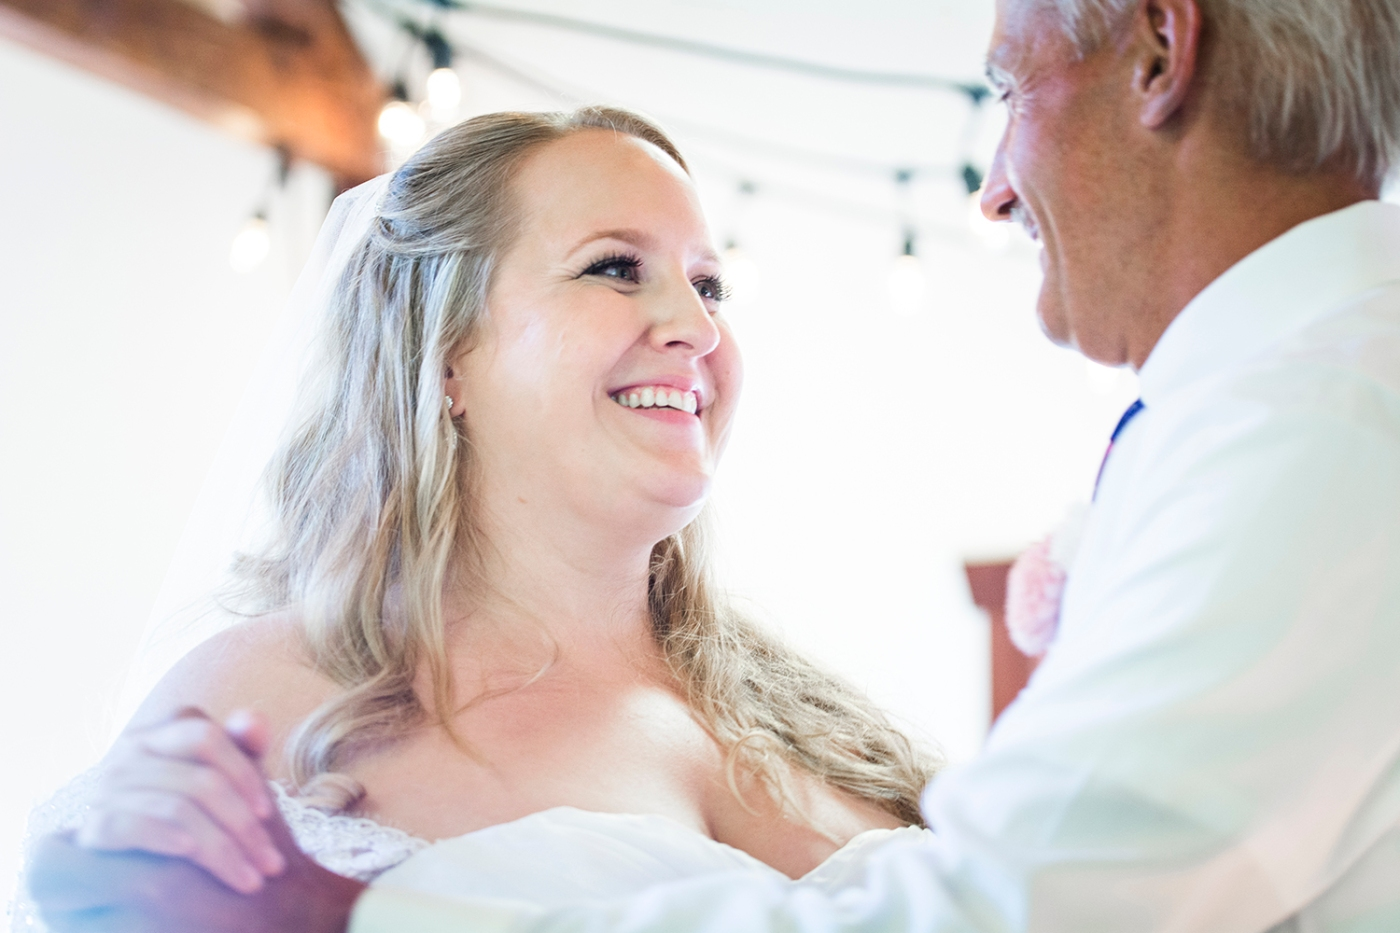 Jane_Speleers_Seattle_photography_Katie_and_Steve_2016_Des_Moines_Marina_Wedding_JS7_9423